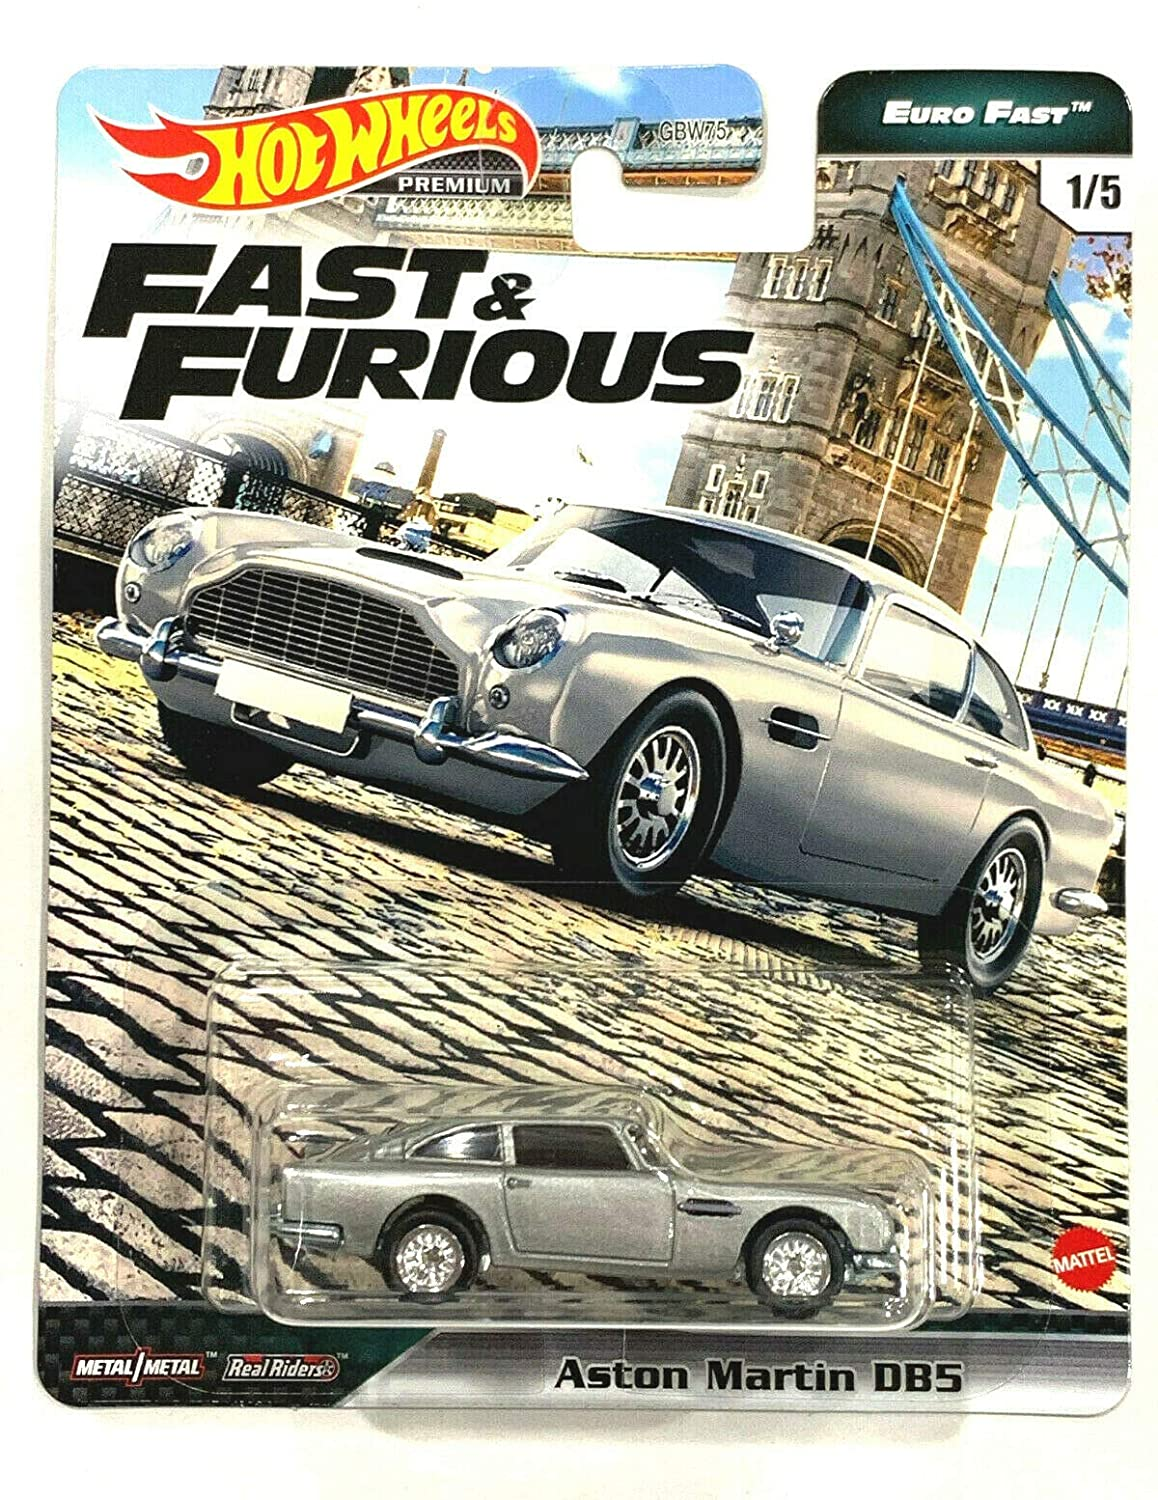 Fast & Furious Hot Wheels Premium Euro Fast 1/5 Aston Martin DB5 (Silver)